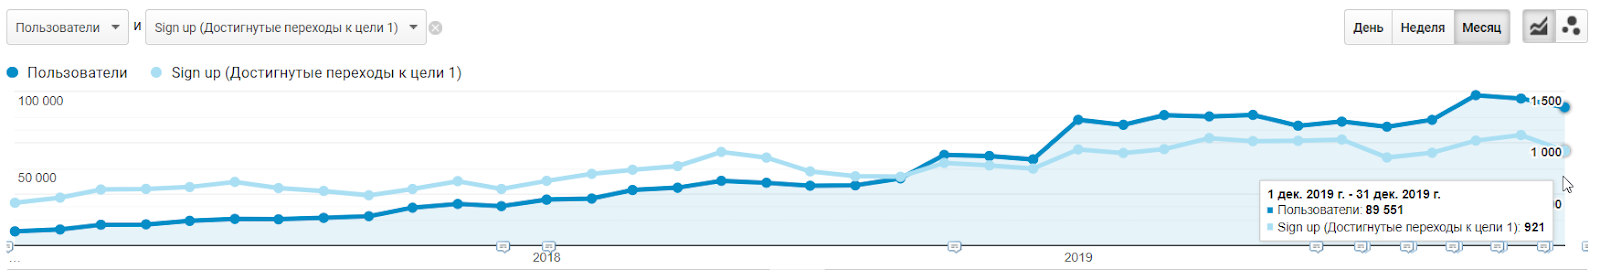 JoinPoster.com traffic and conversions while working with Livepage (2017-2019)